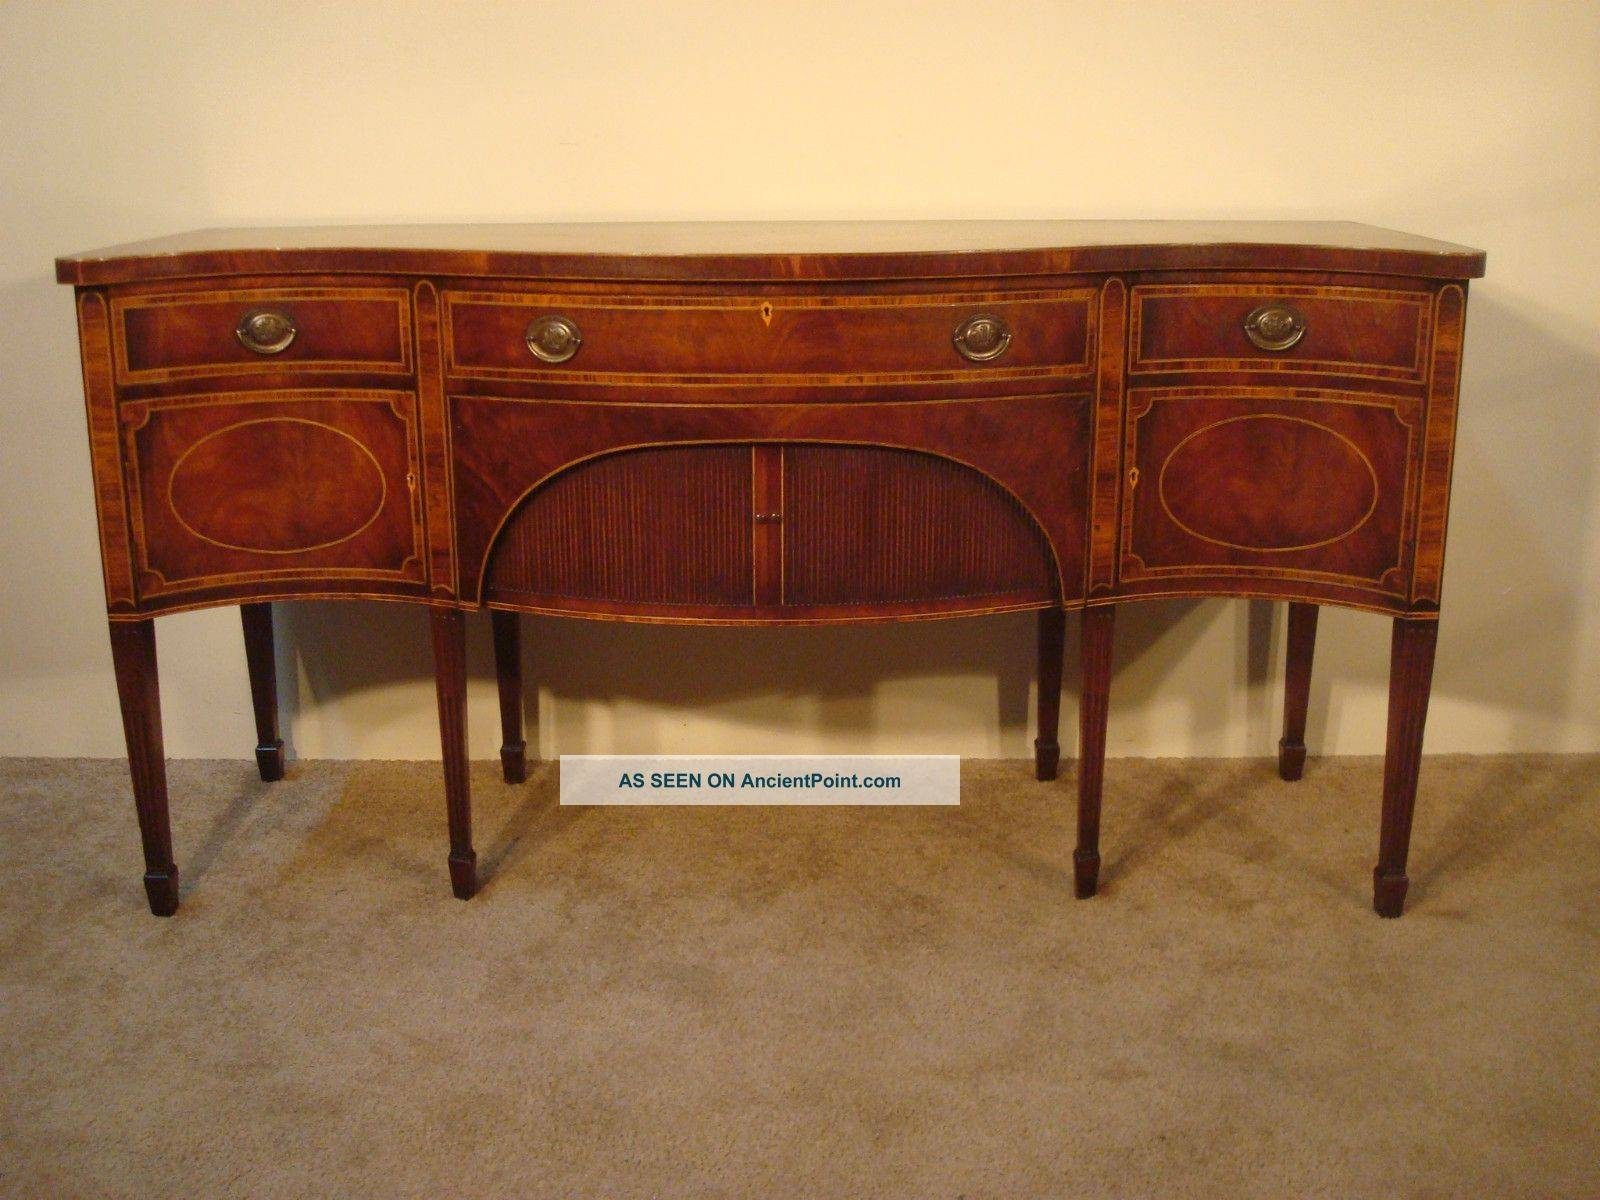 Antique Mahogany Furniture Within 2018 Hepplewhite Sideboards (#4 of 15)